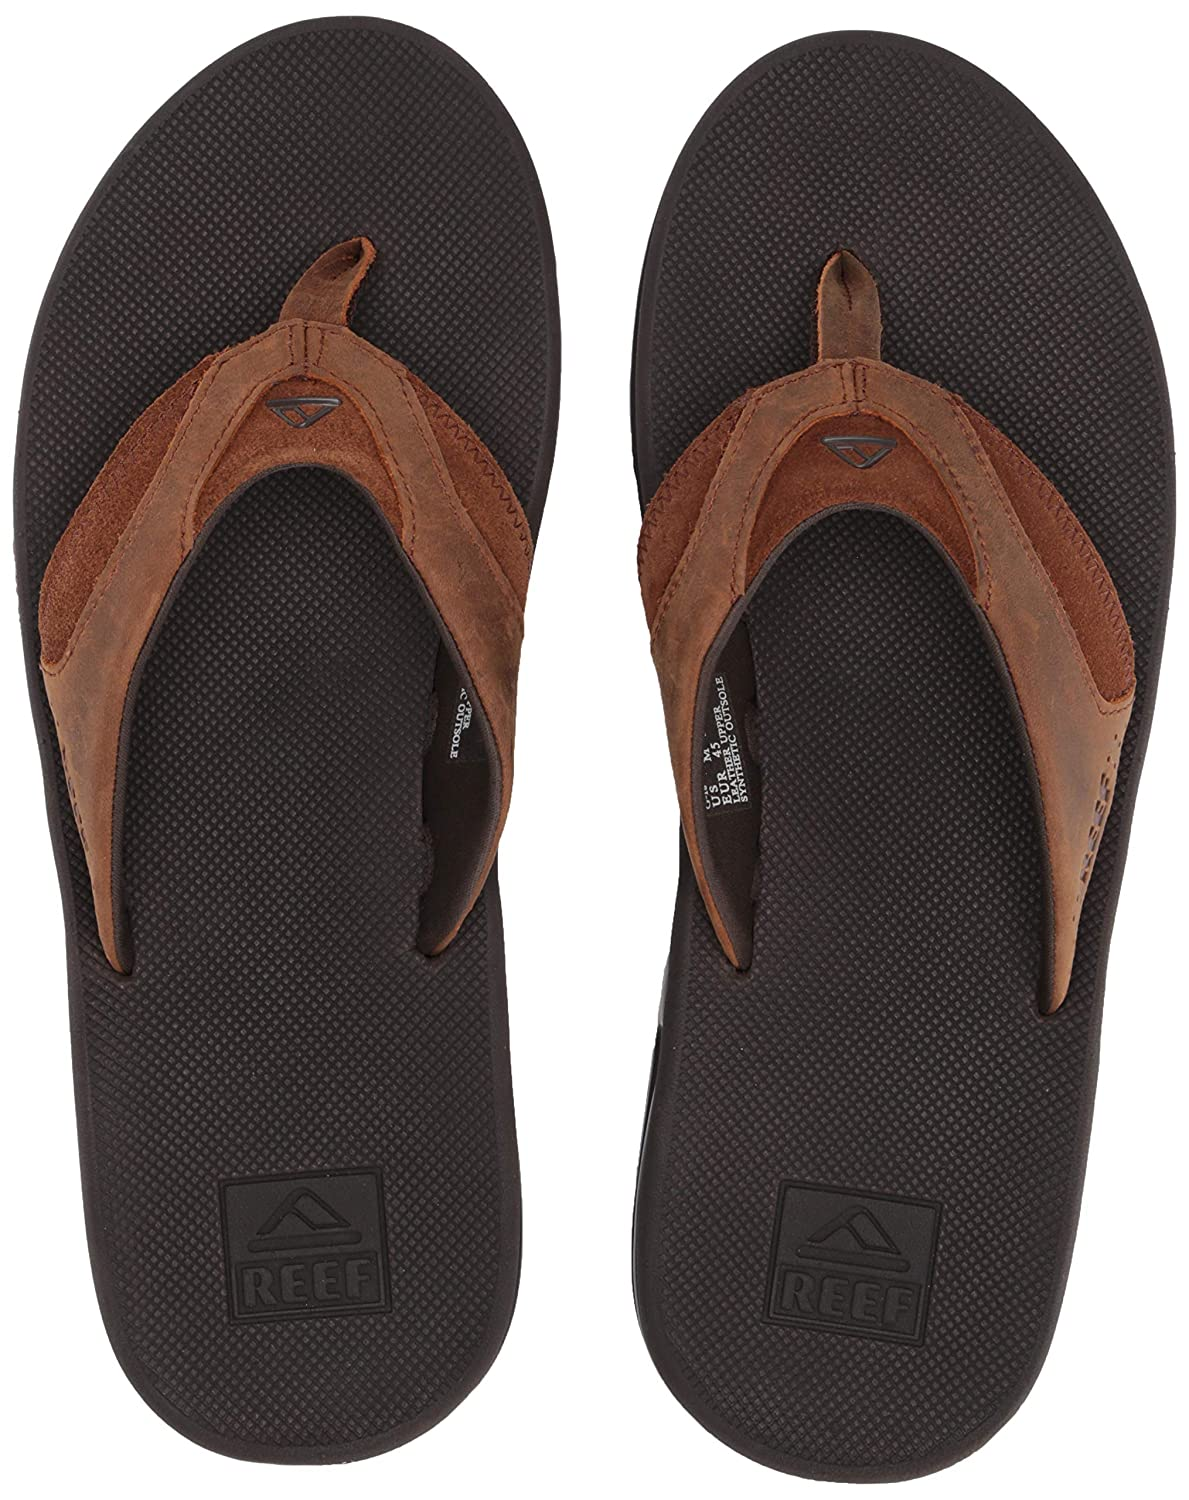 Reef Leather Fanning, Chanclas para Hombre, Marrón (Bronze BRZ), 39 EU